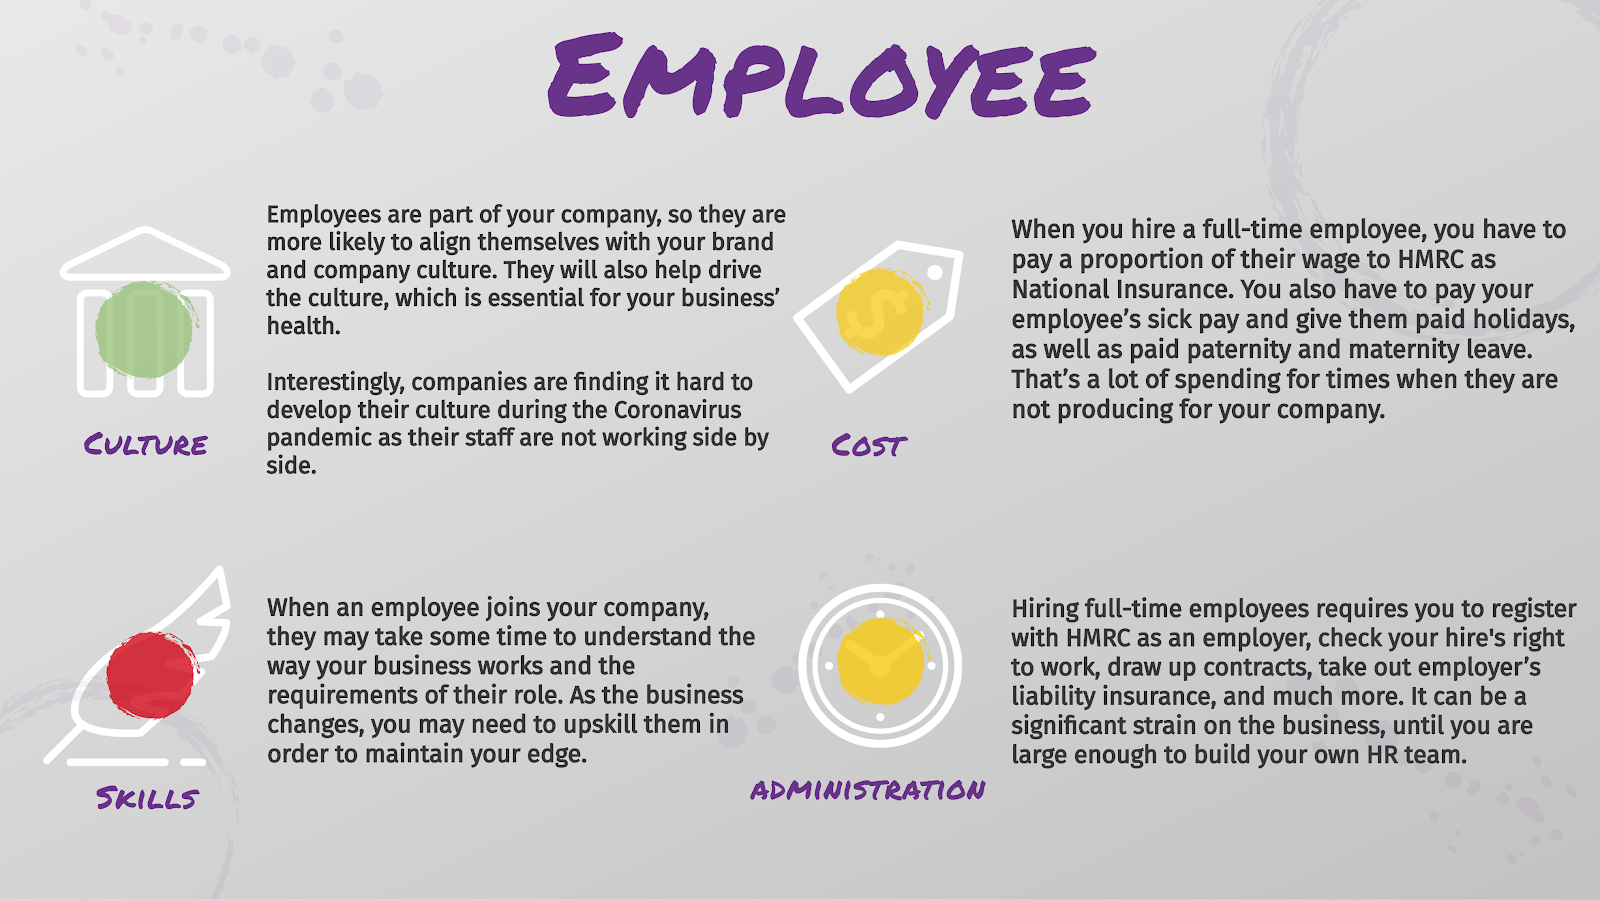 An infographic providing a summary of hiring an employee in 2021.